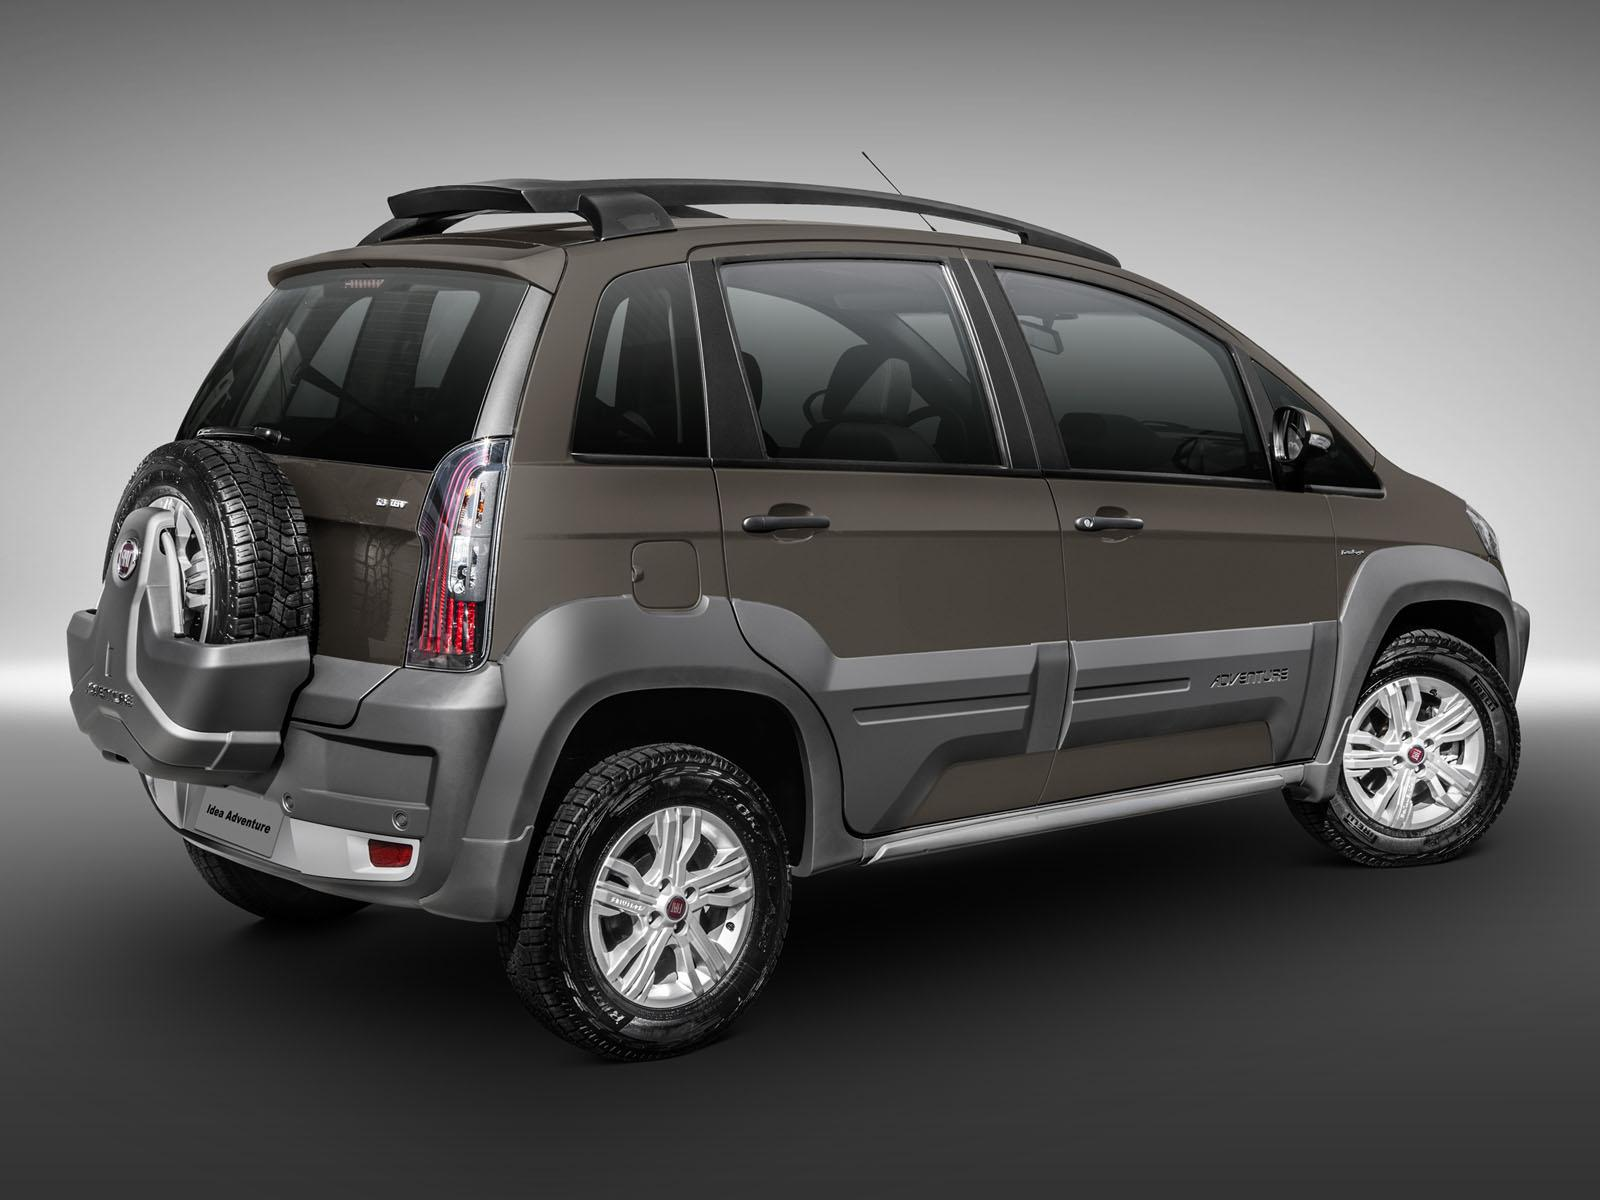 Fiat revamps the 2014 idea 2014 fiat idea adventure 3 for Paragolpe delantero fiat idea adventure